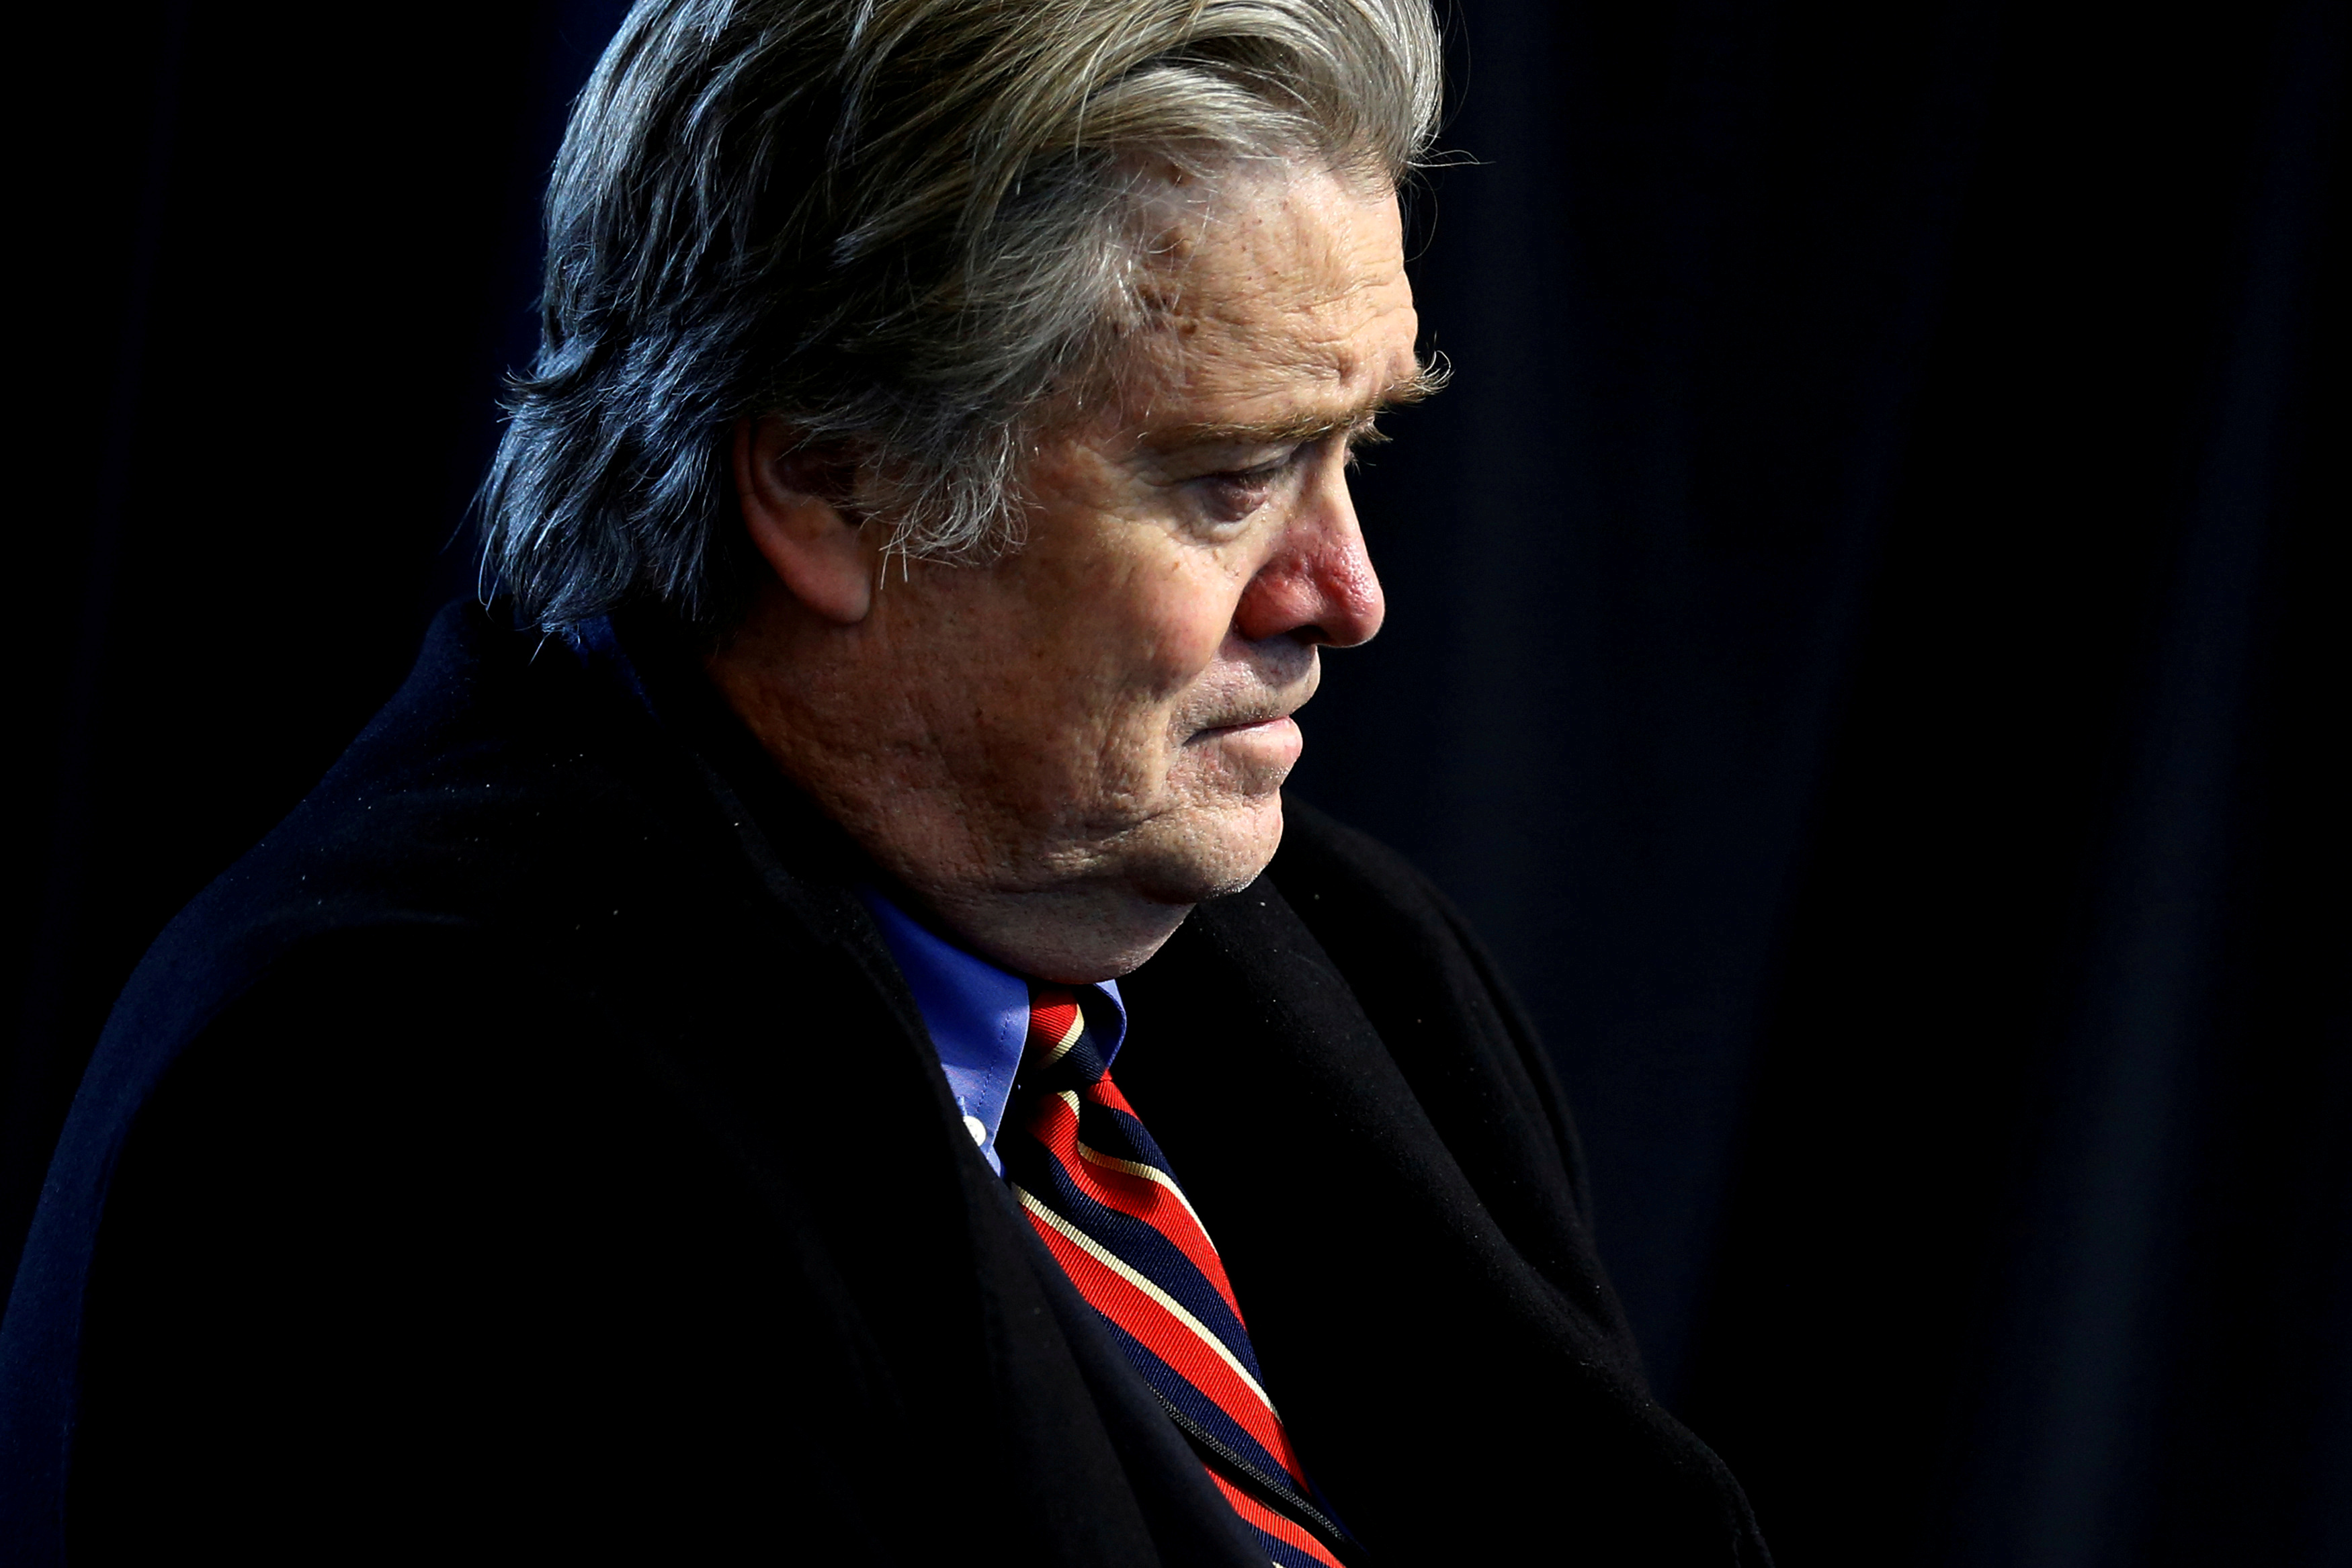 Bannon attends a roundtable discussion in Ypsilanti Township